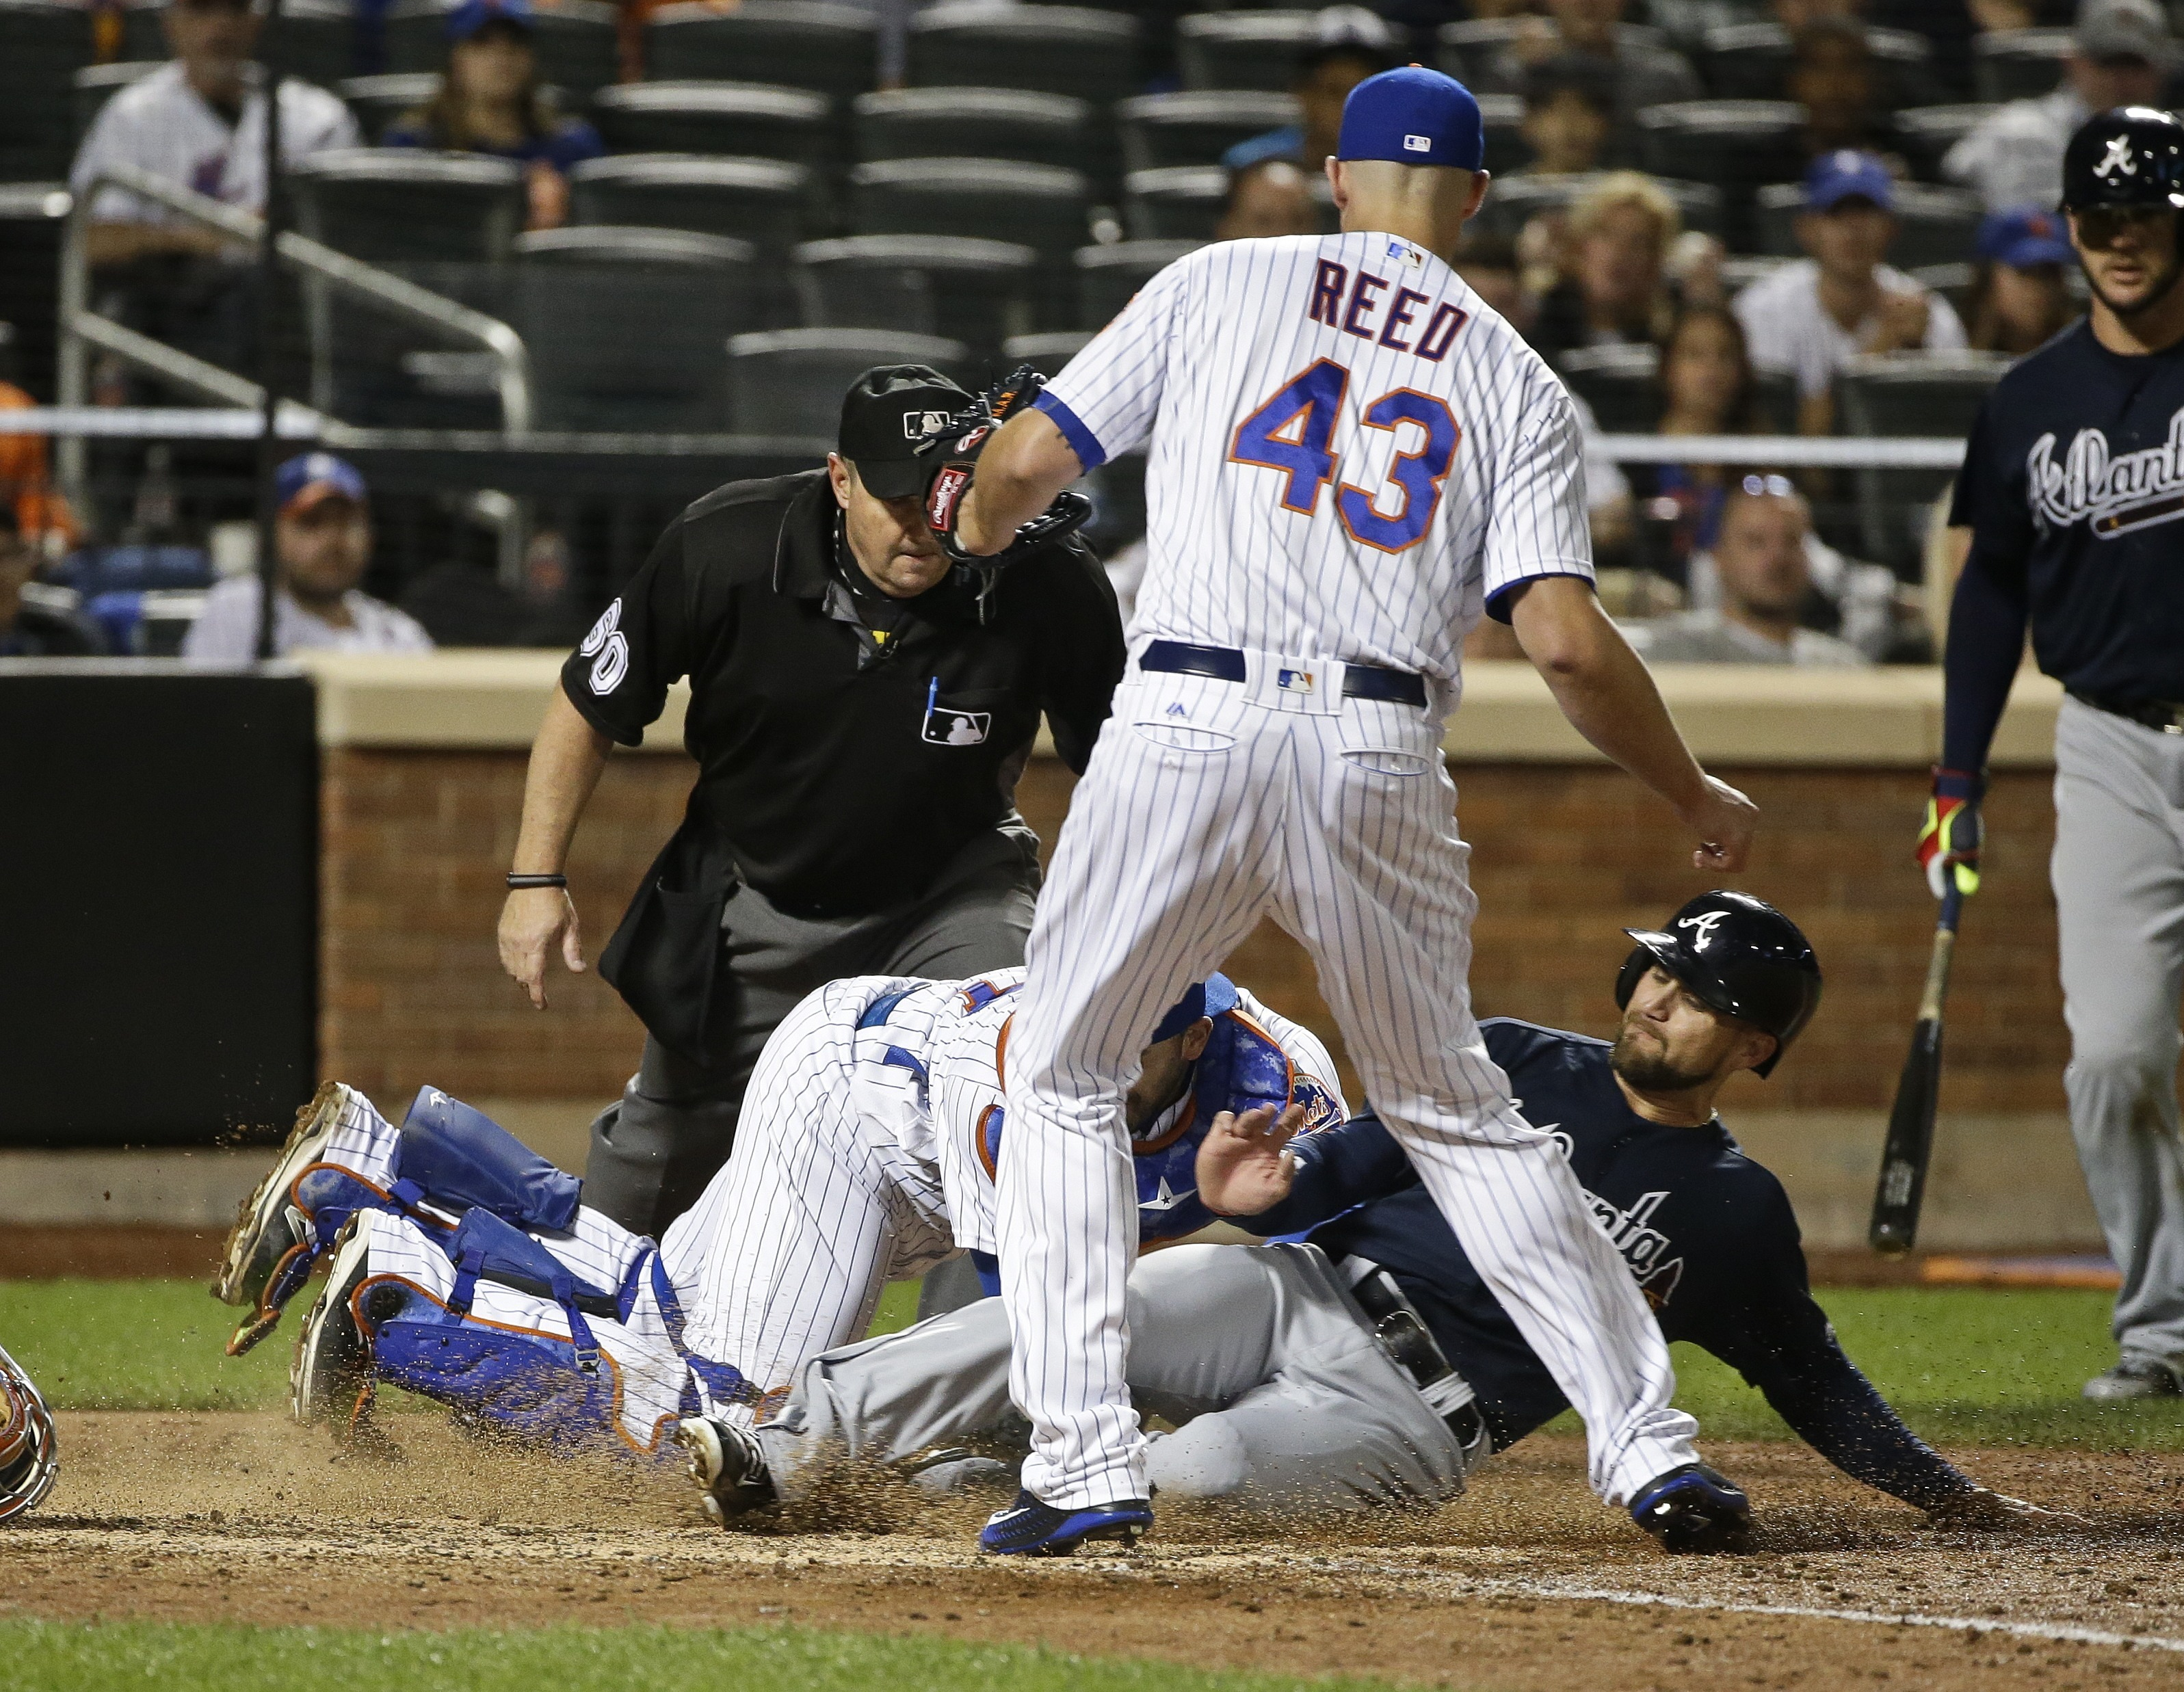 Atlanta Braves' Ender Inciarte, bottom right, steals home plate on a wild pitch by New York Mets relief pitcher Addison Reed (43) as catcher Rene Rivera, bottom left, attempts to tag him out during the eighth inning of a baseball game Saturday, June 18, 2